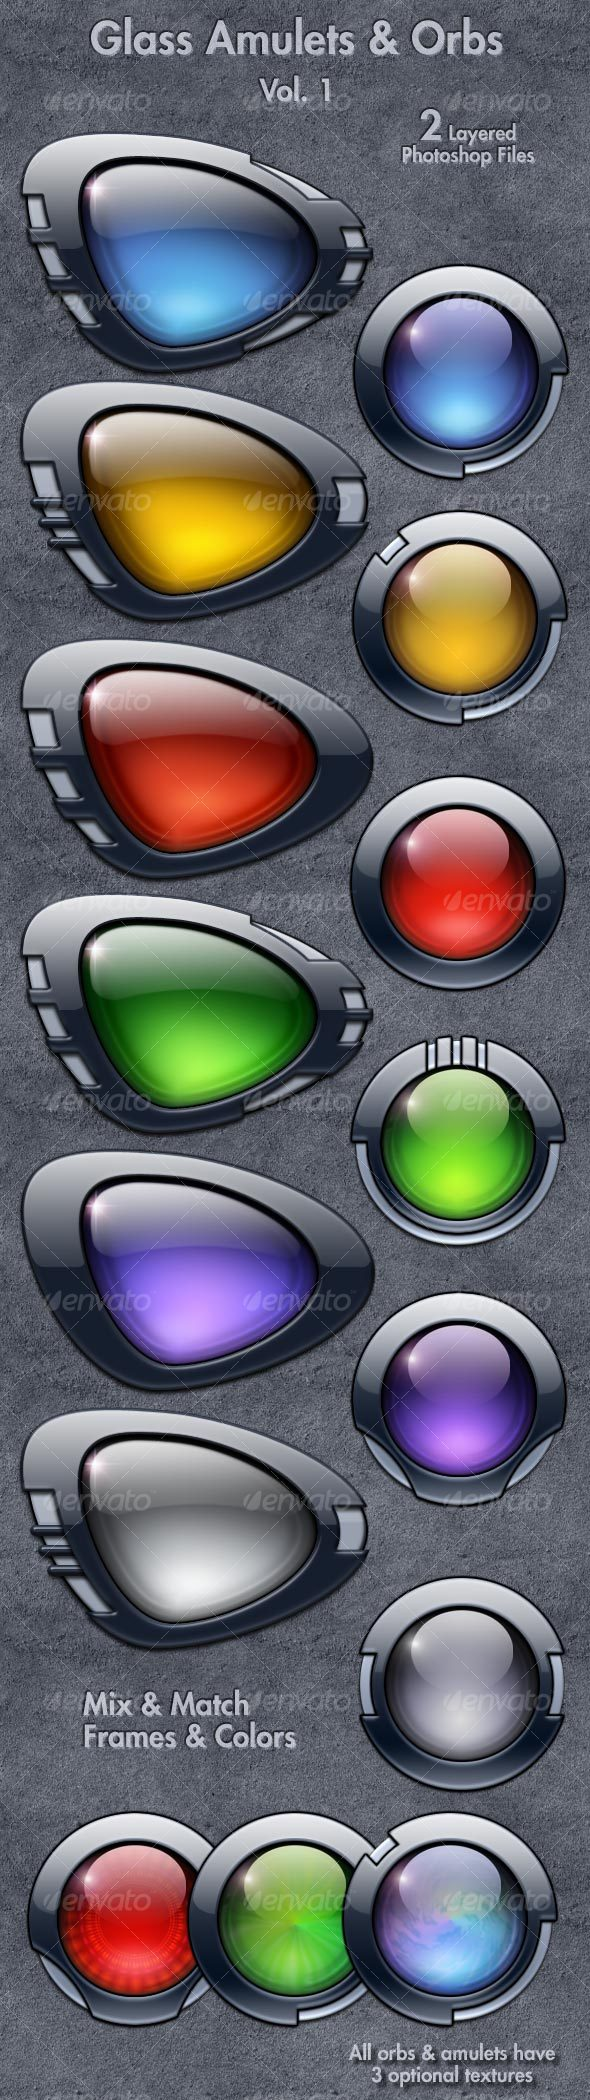 GraphicRiver Glass Amulets & Orbs Vol 1 76929